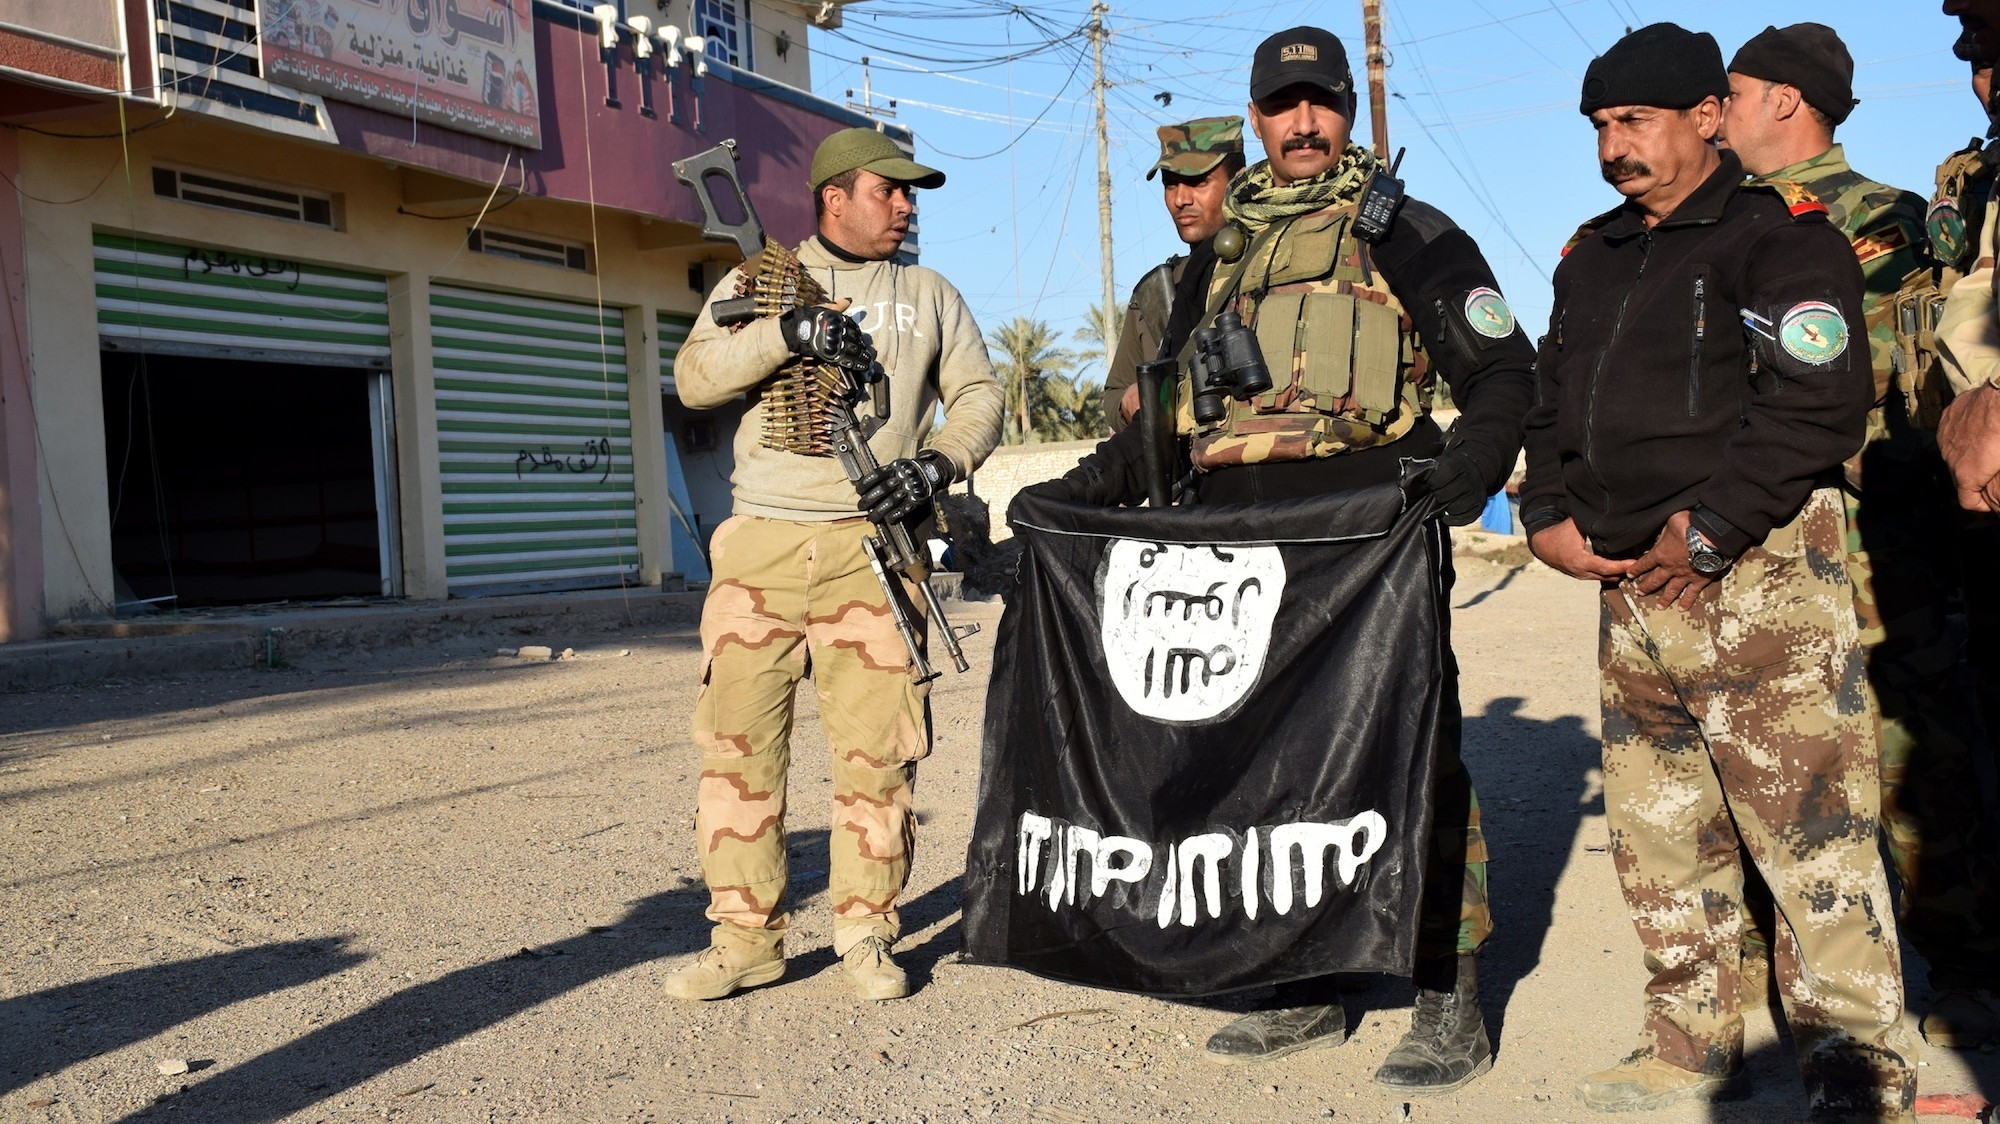 Iraq Claims Major Victory Over the Islamic State: 'All of Ramadi Has Now Been Liberated'